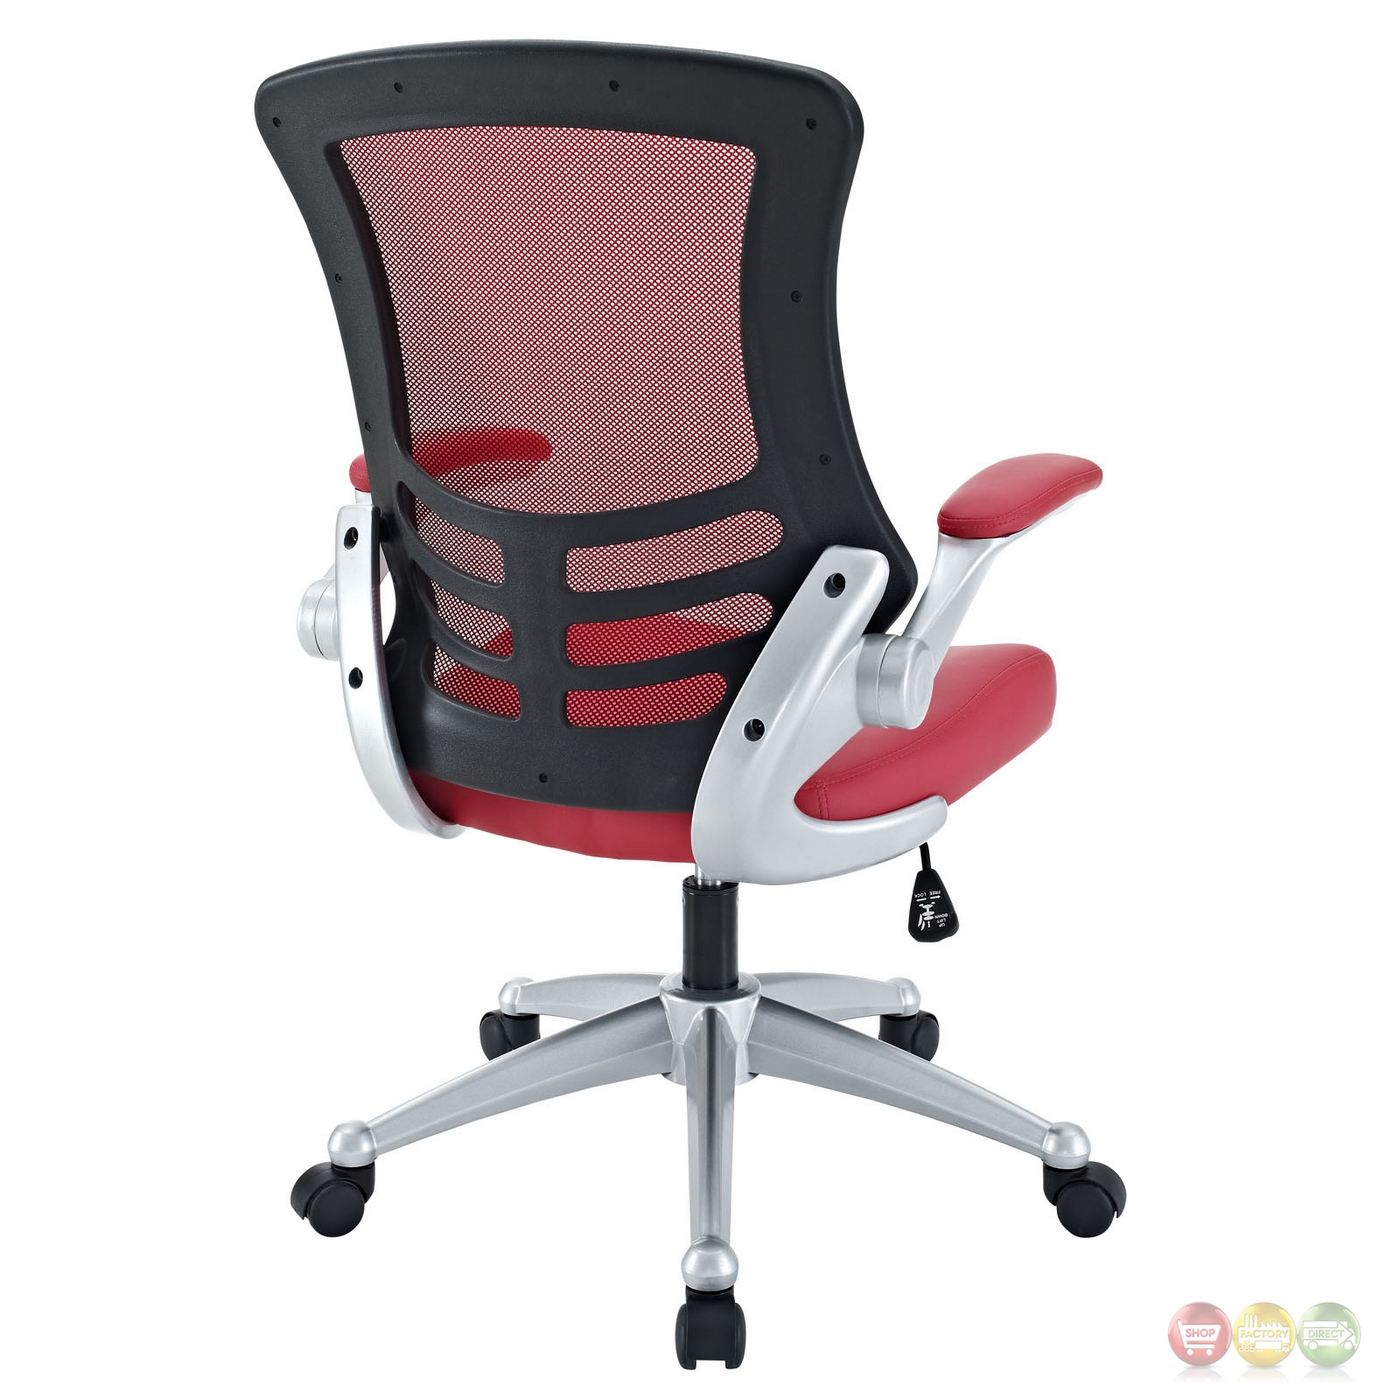 office chair lumbar support mesh black and cream dining chairs attainment modern ergonomic back w